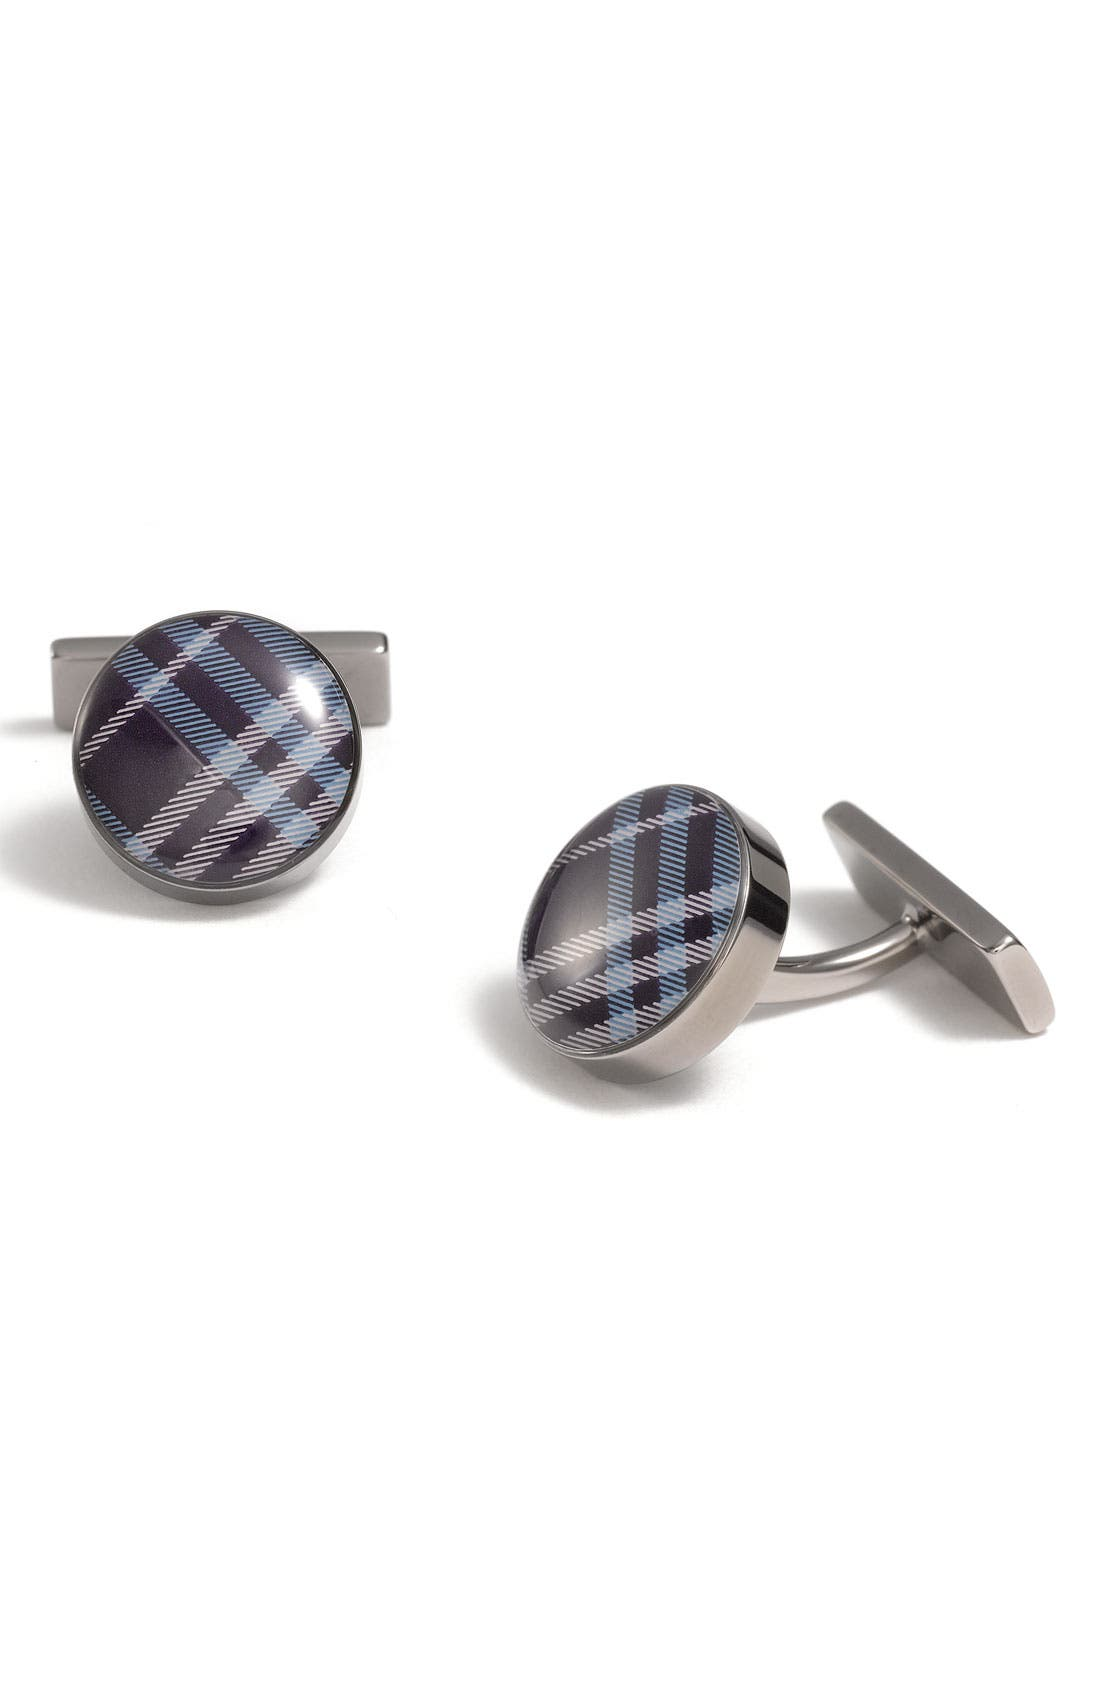 Main Image - Burberry Enameled Check Print Cuff Links